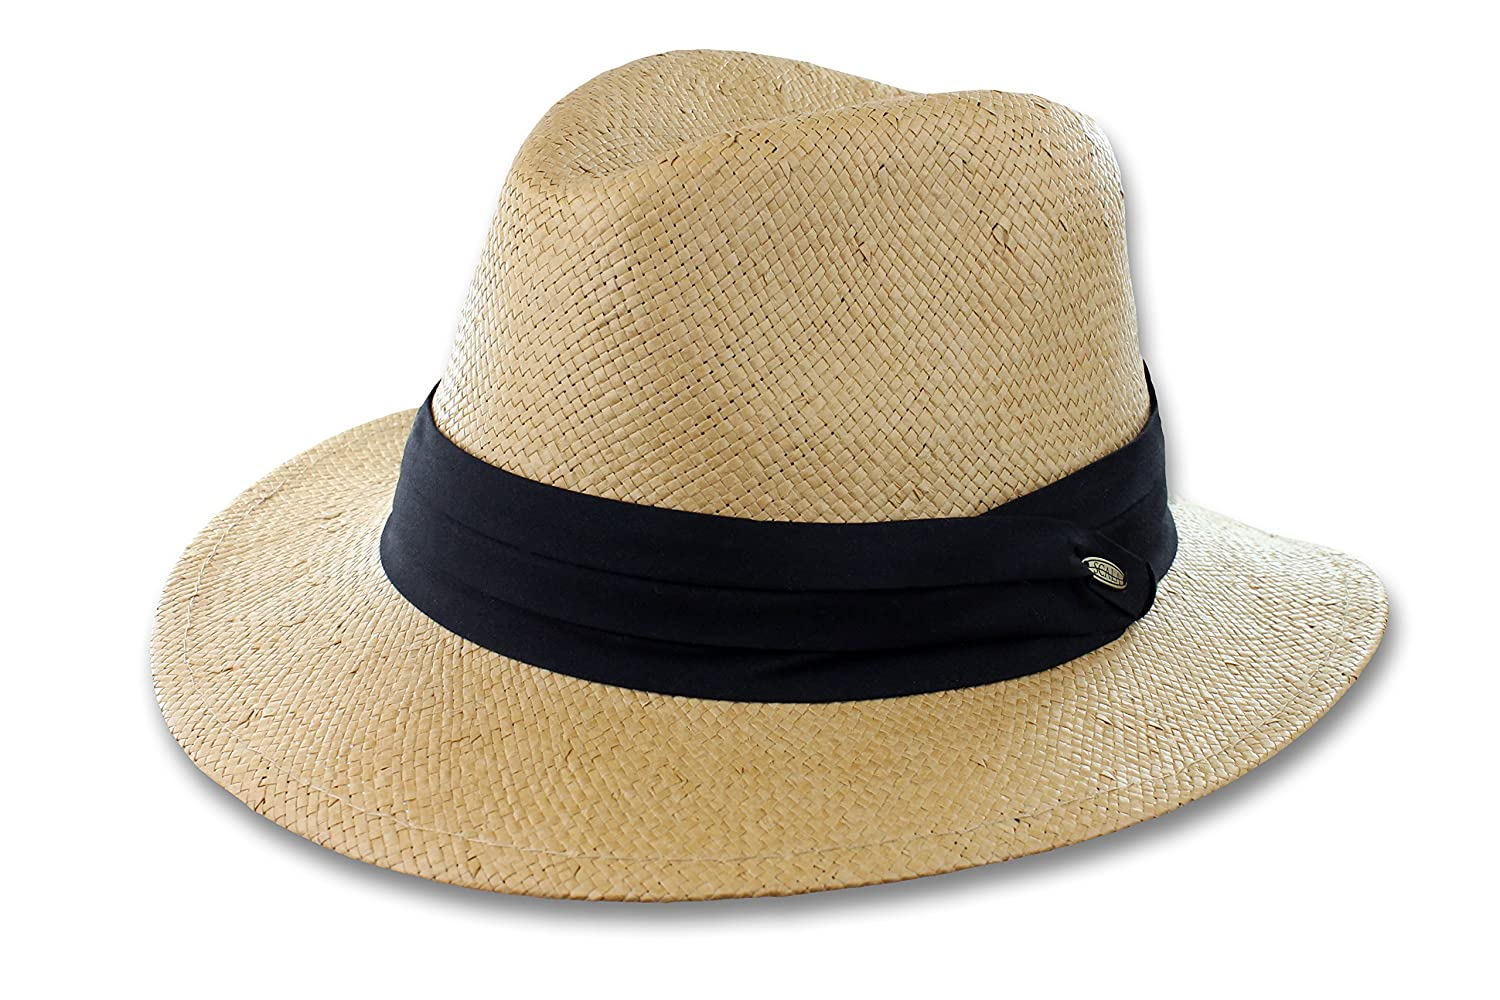 47bf1e0f Scala Men's Toyo Safari Hat with Black Trim at Amazon Men's Clothing store: